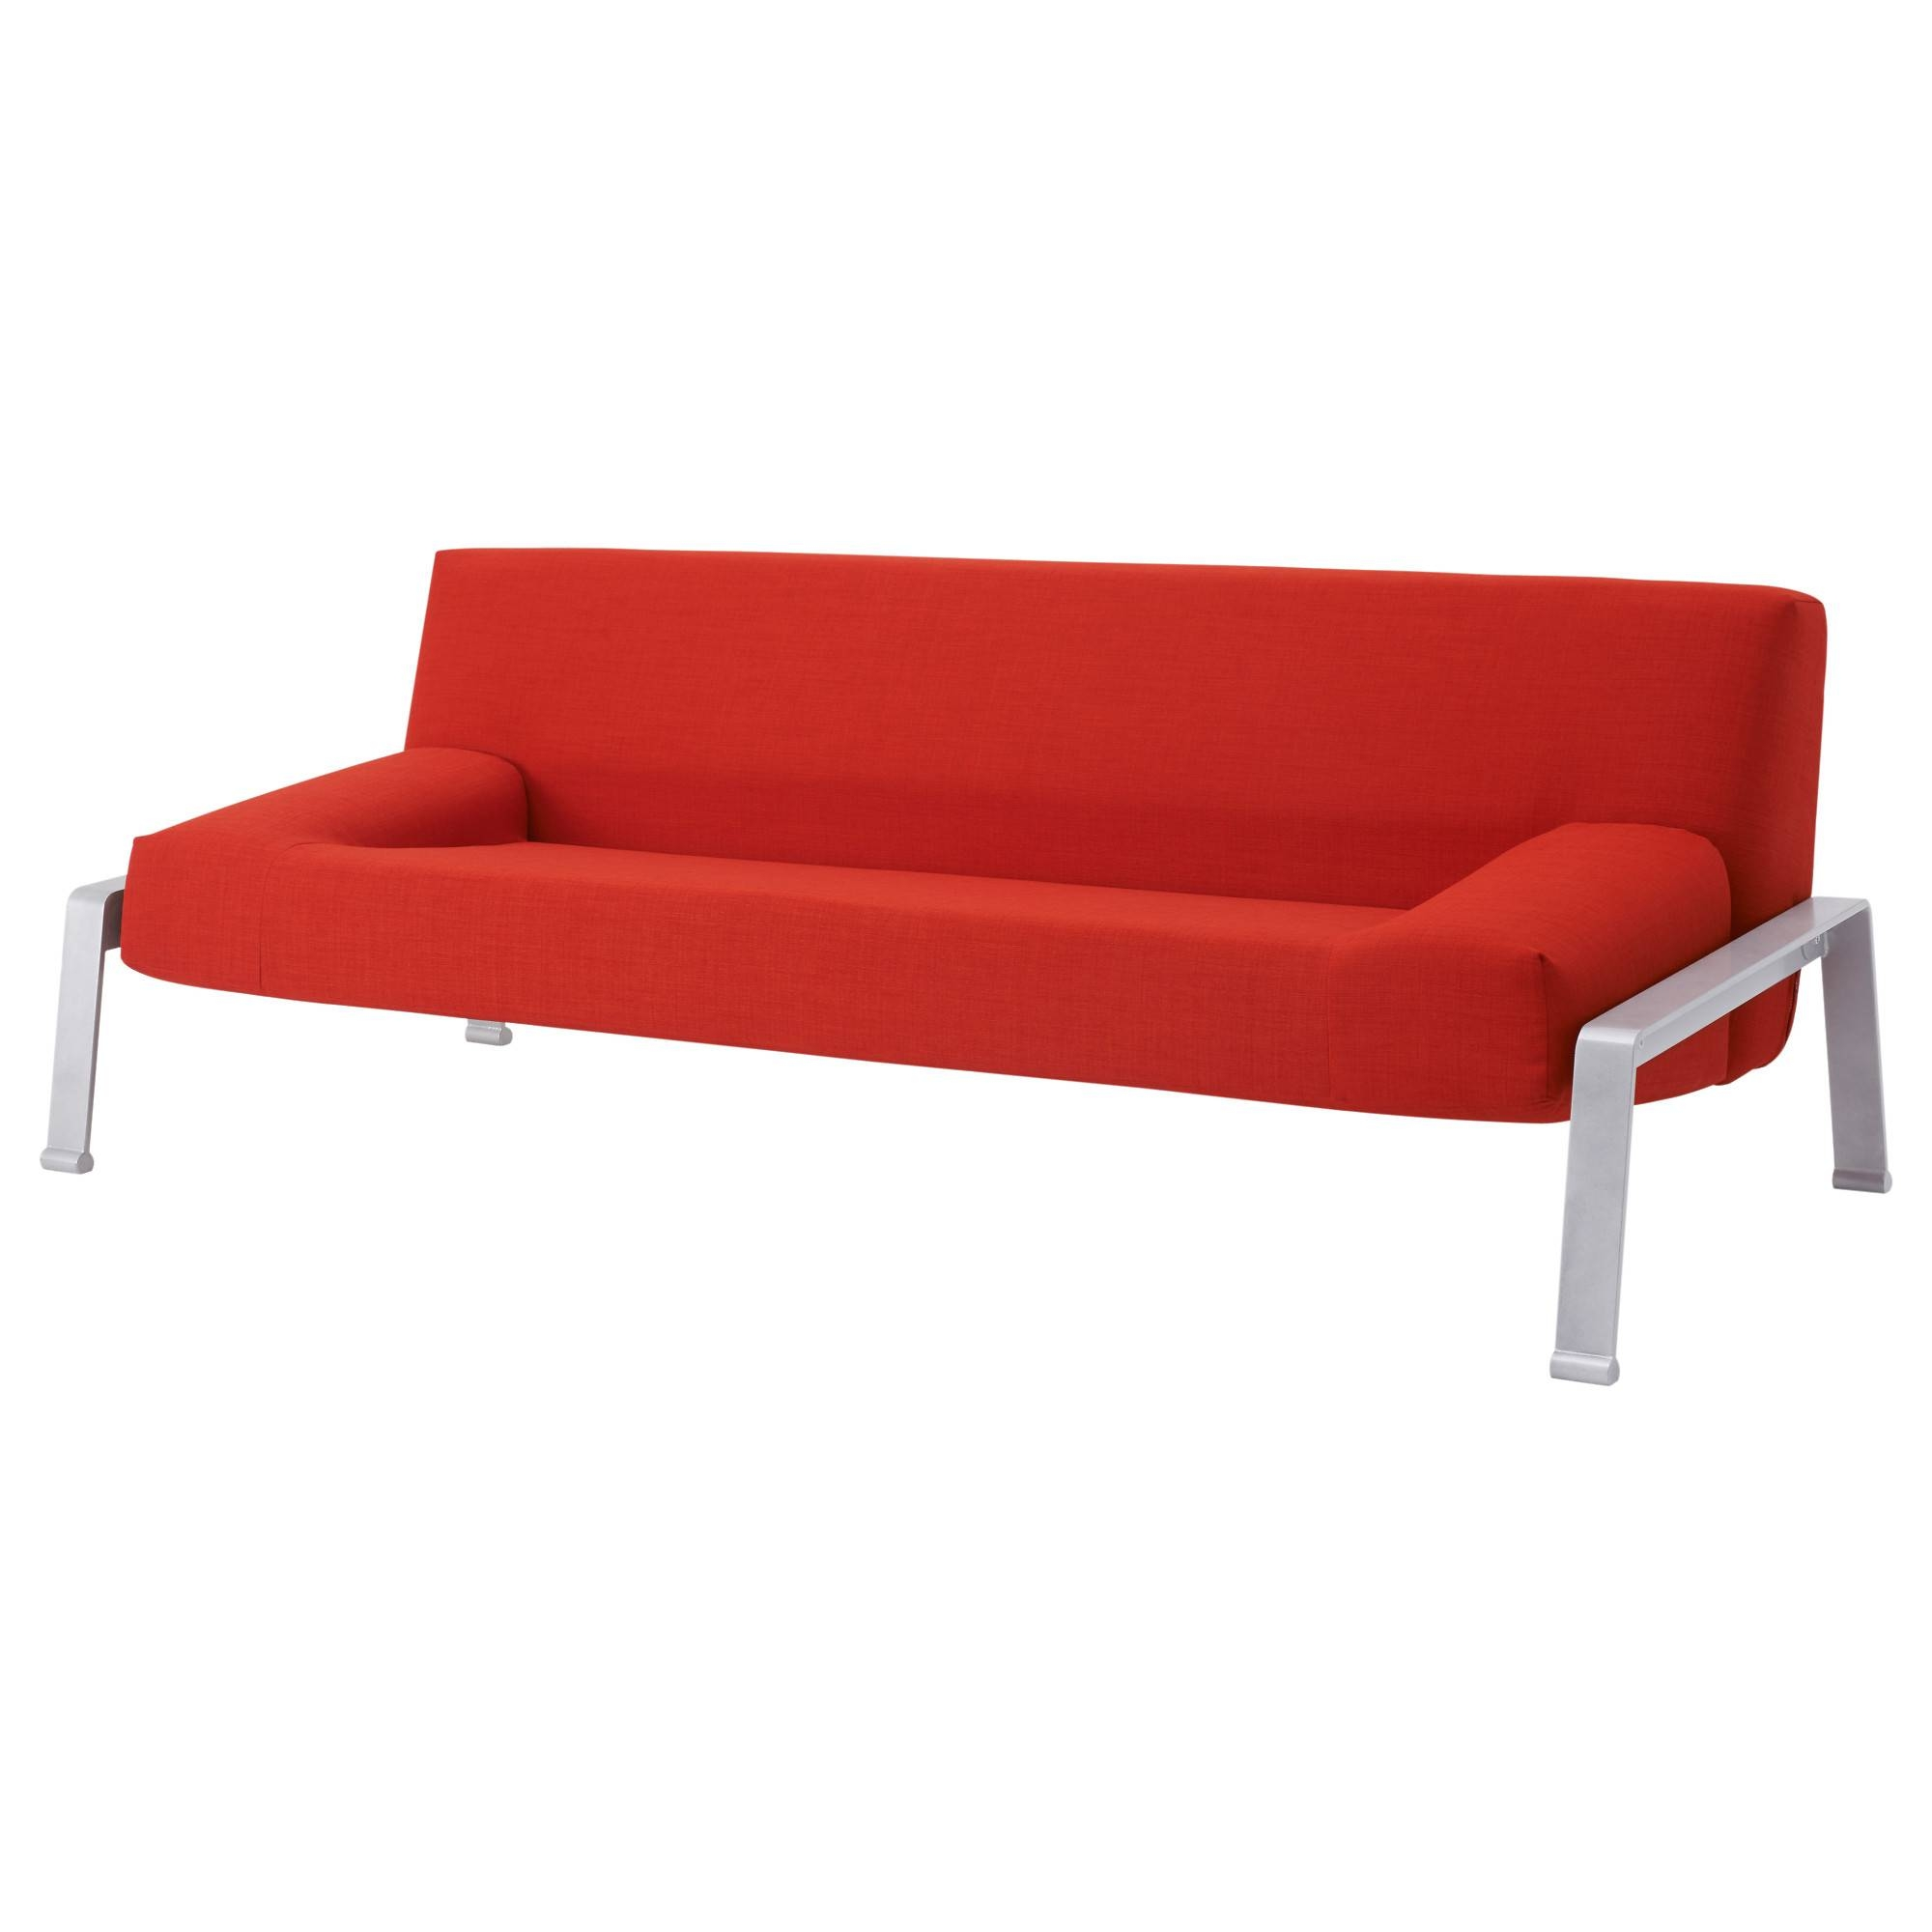 Sleeper-Sofas & Chair Beds - Ikea regarding Twin Sleeper Sofa Chairs (Image 16 of 30)